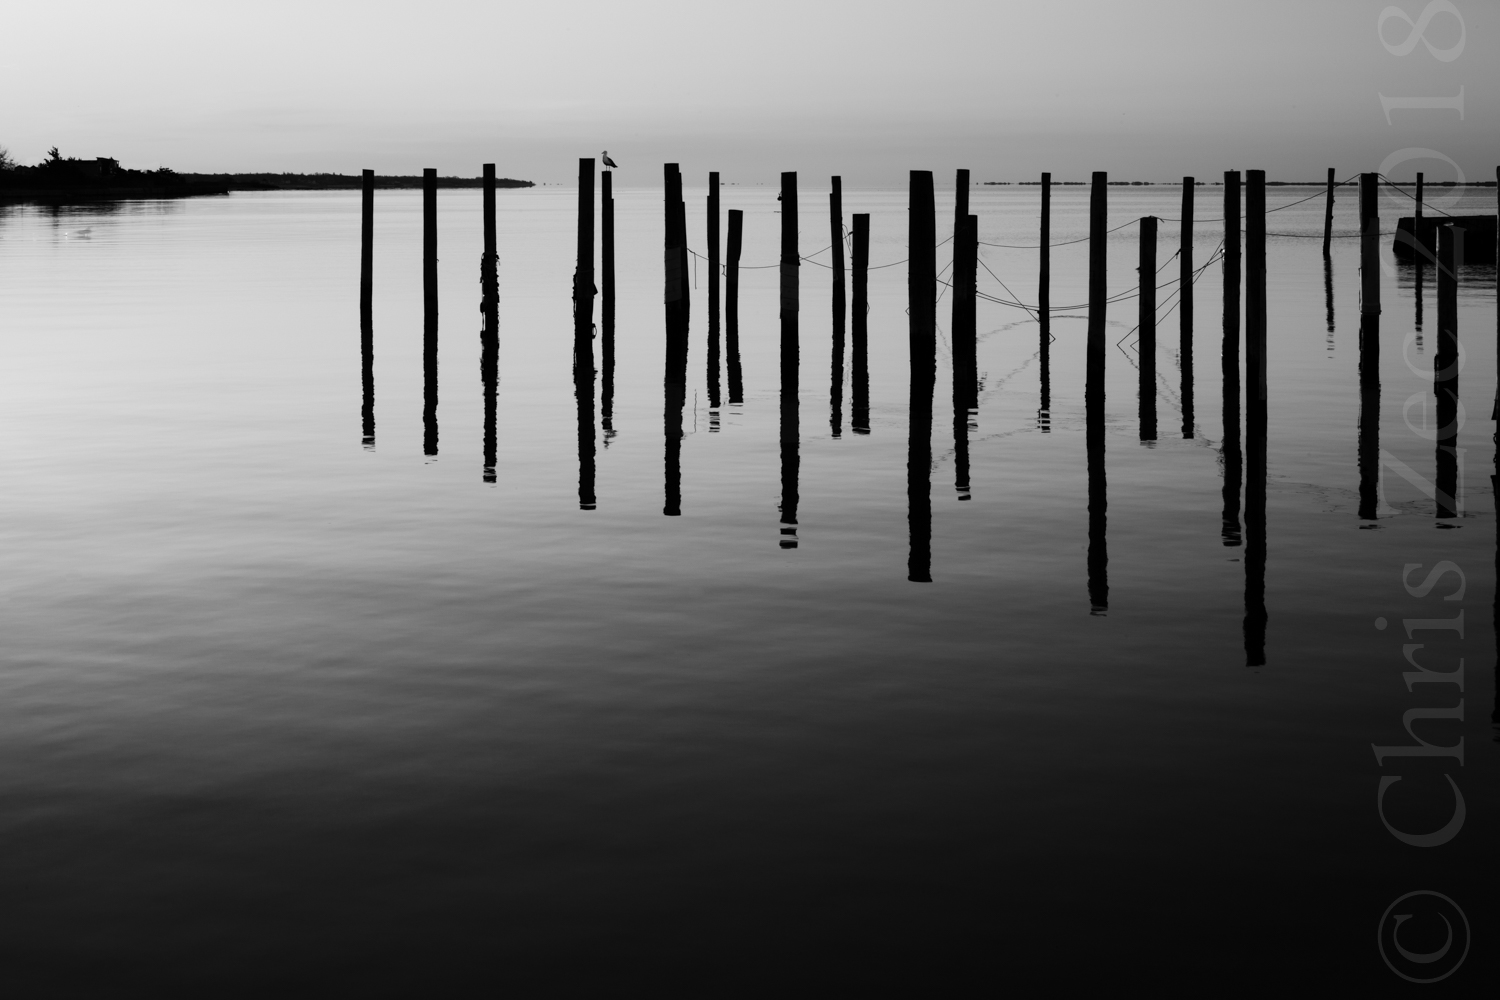 """Pilings in Grayscale"", 2011"